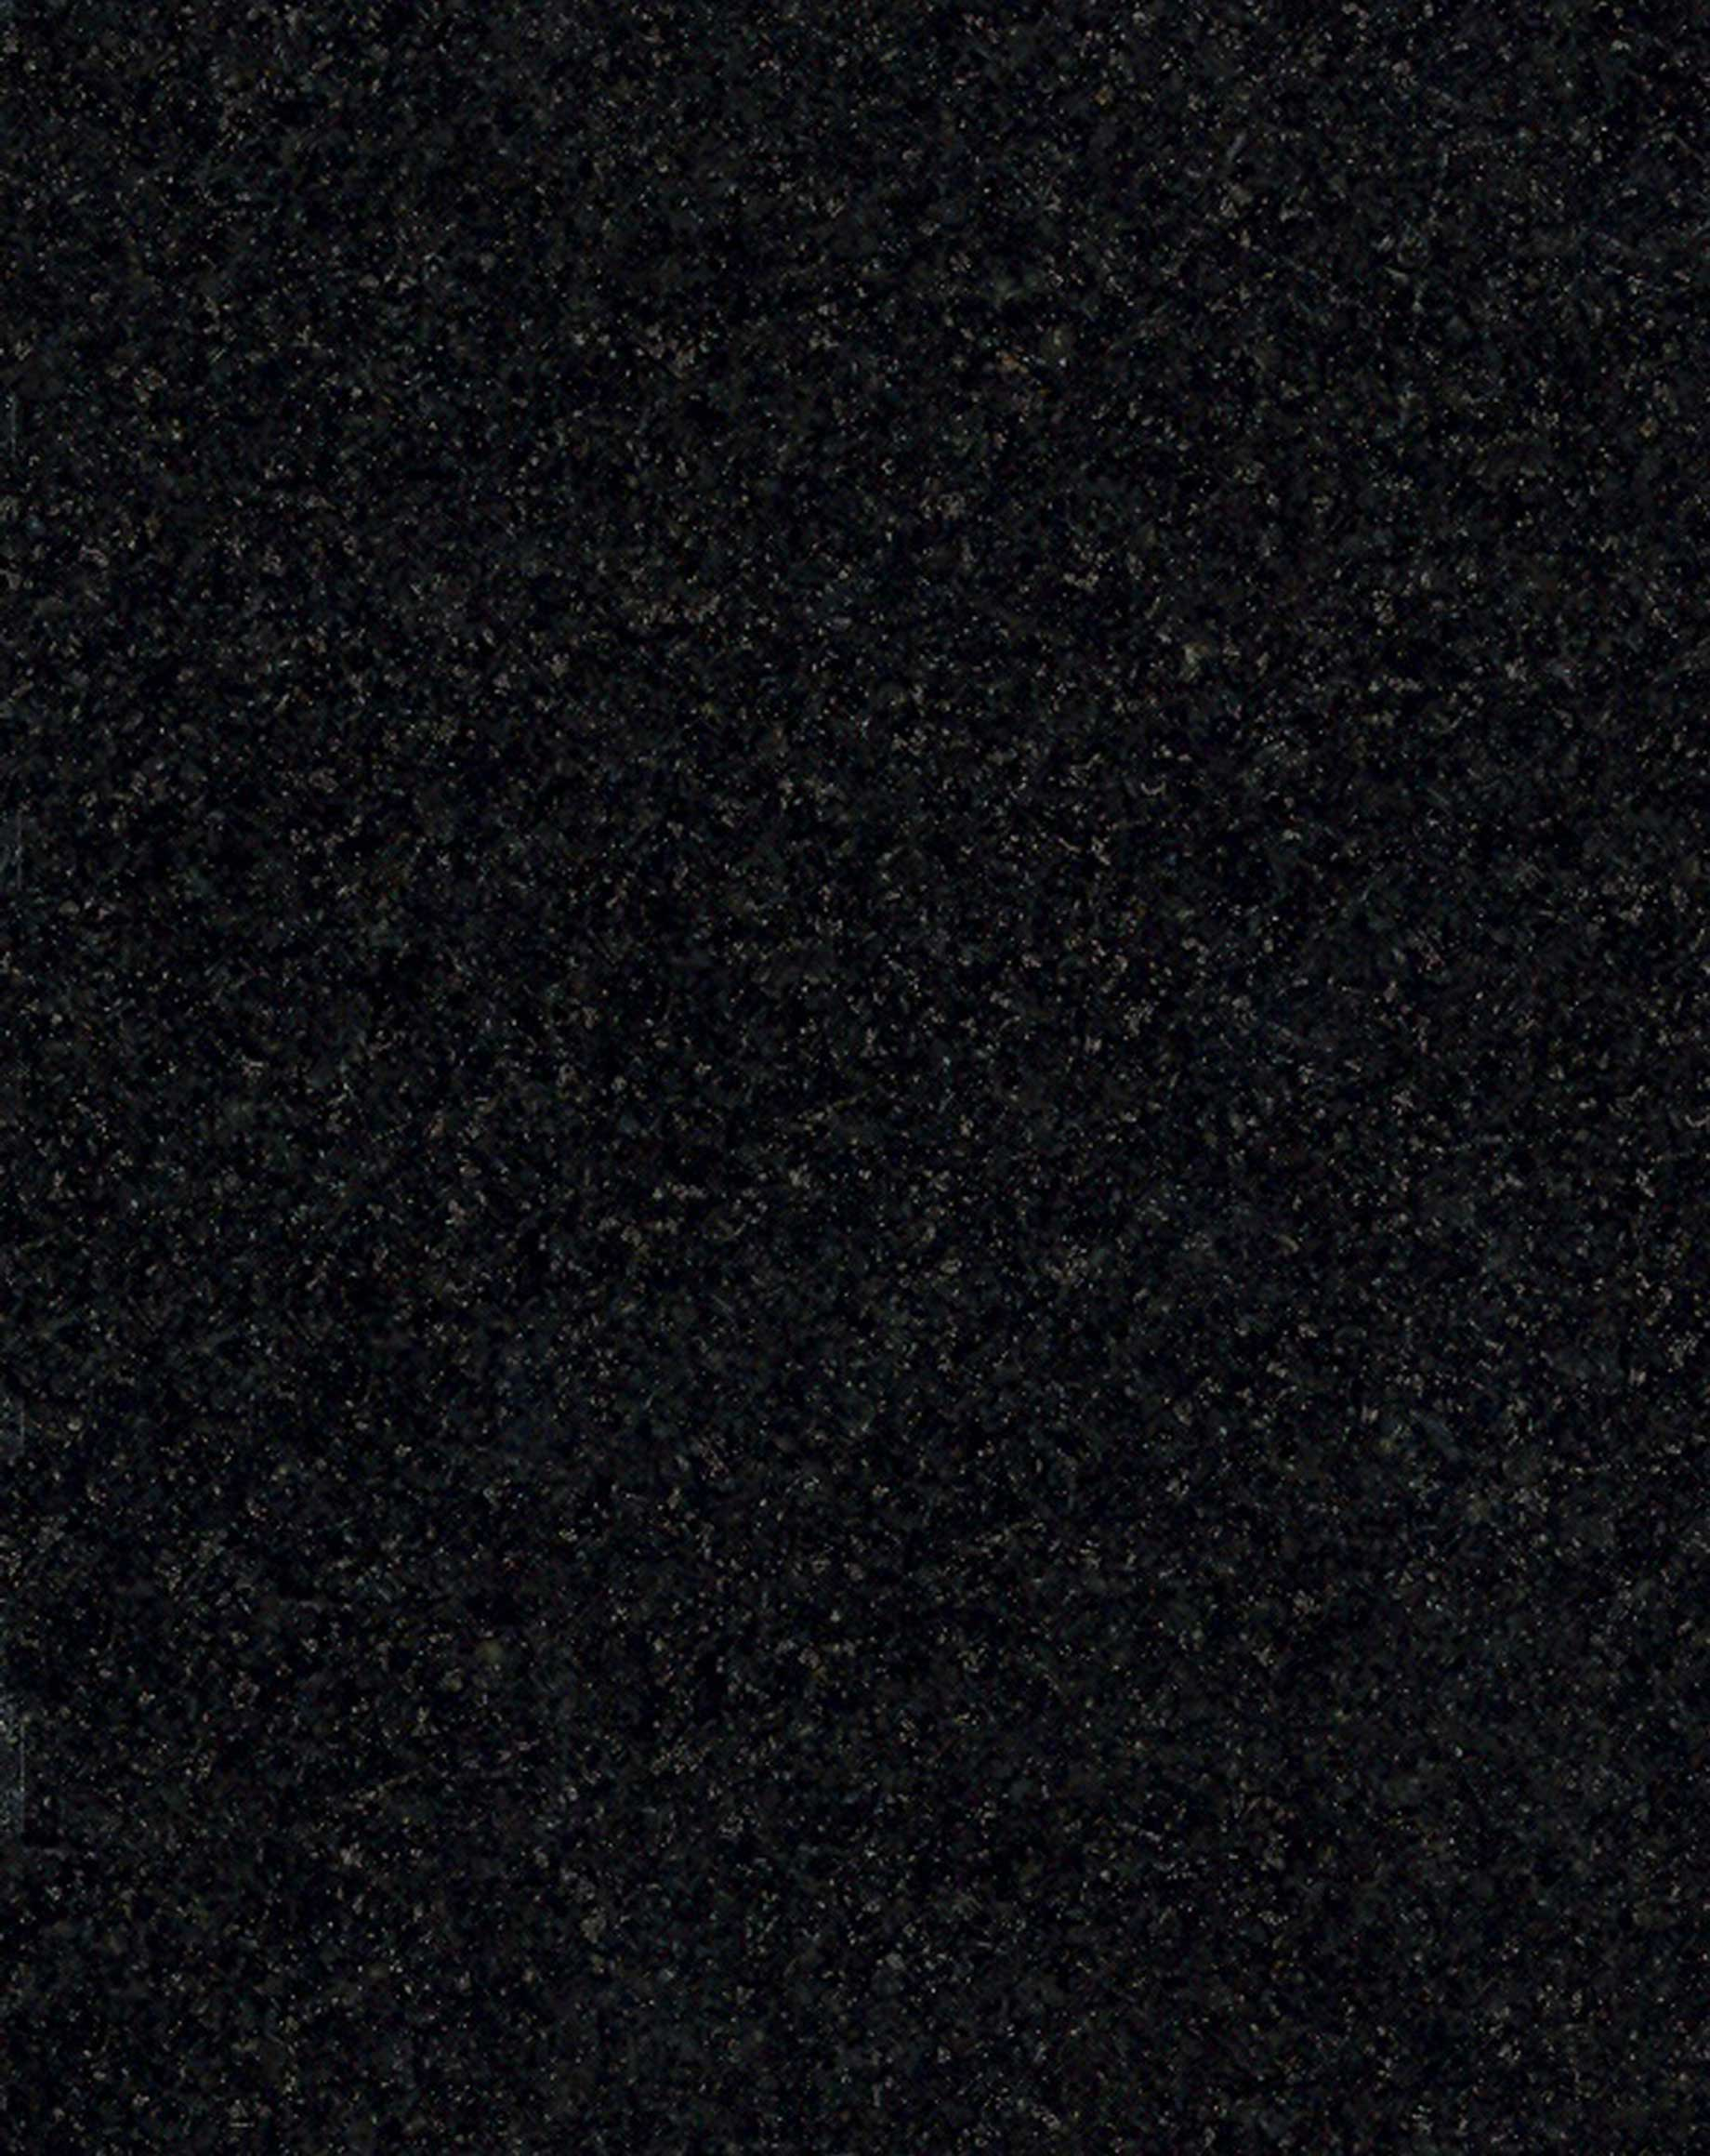 Black Granite Hearth And Back Panel At The Lowest Prices